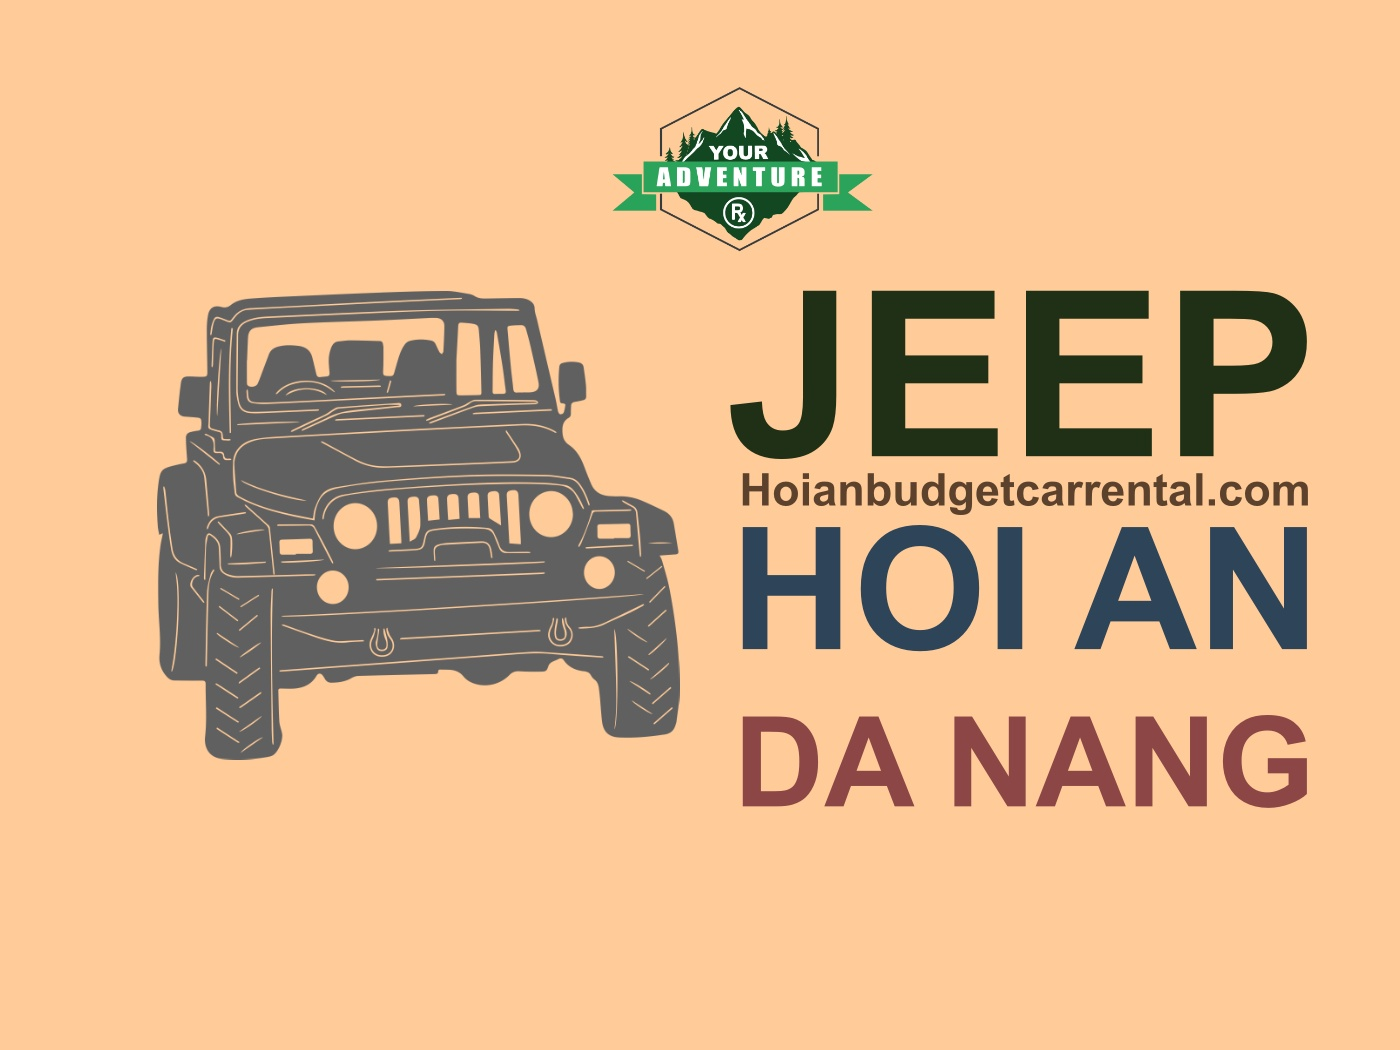 danang hoian jeep tour - DA NANG HOI AN JEEP TOUR